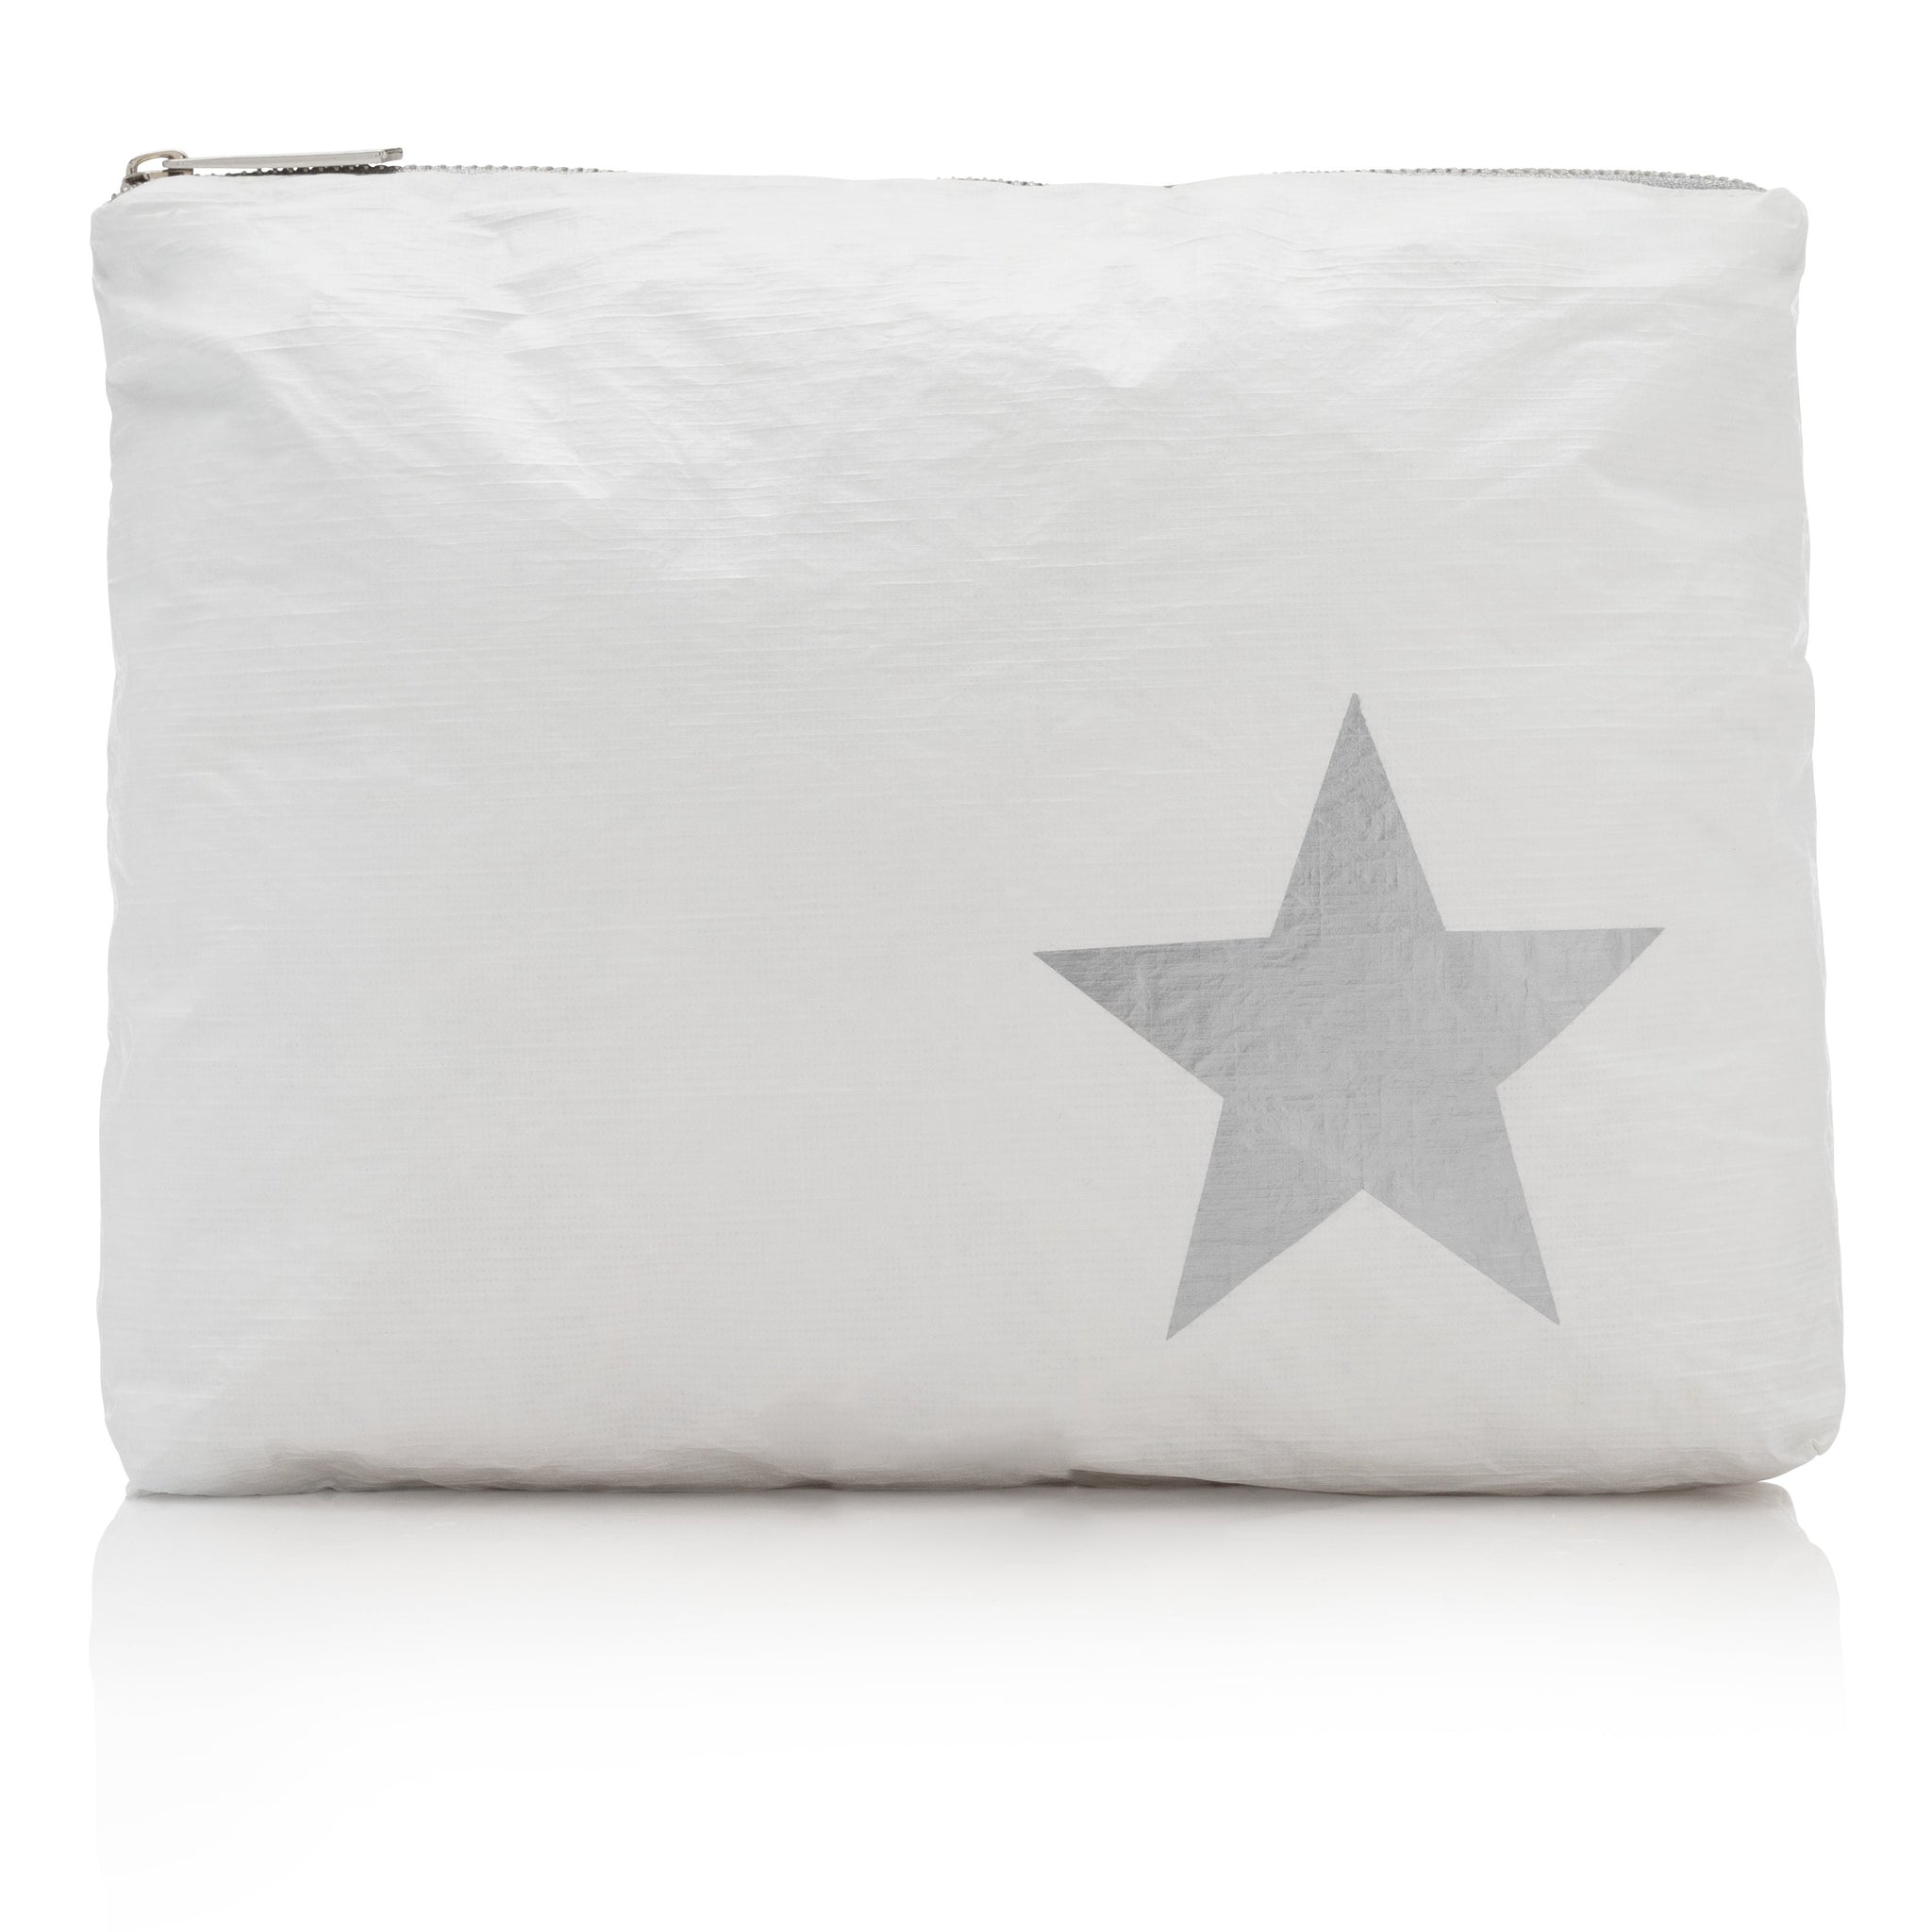 Travel Pack - Makeup Pouch - Beach Bag - Medium Pack - White with Metallic Silver Star